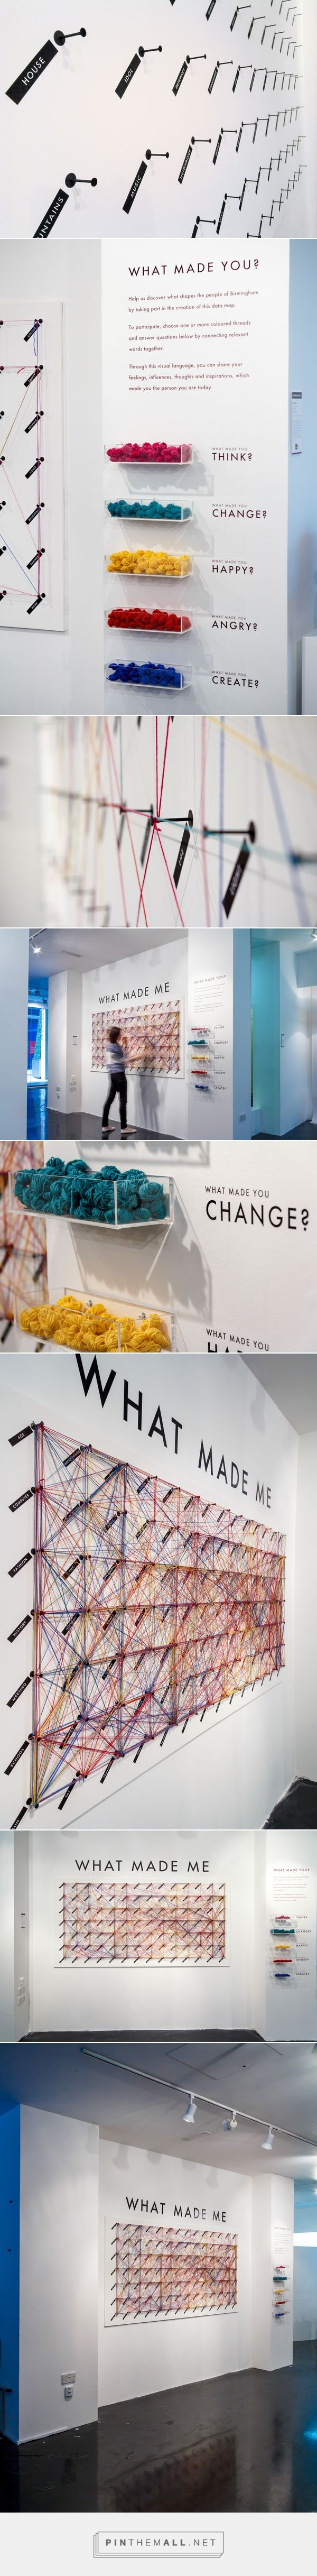 WHAT MADE ME Interactive Public Installation on Behance